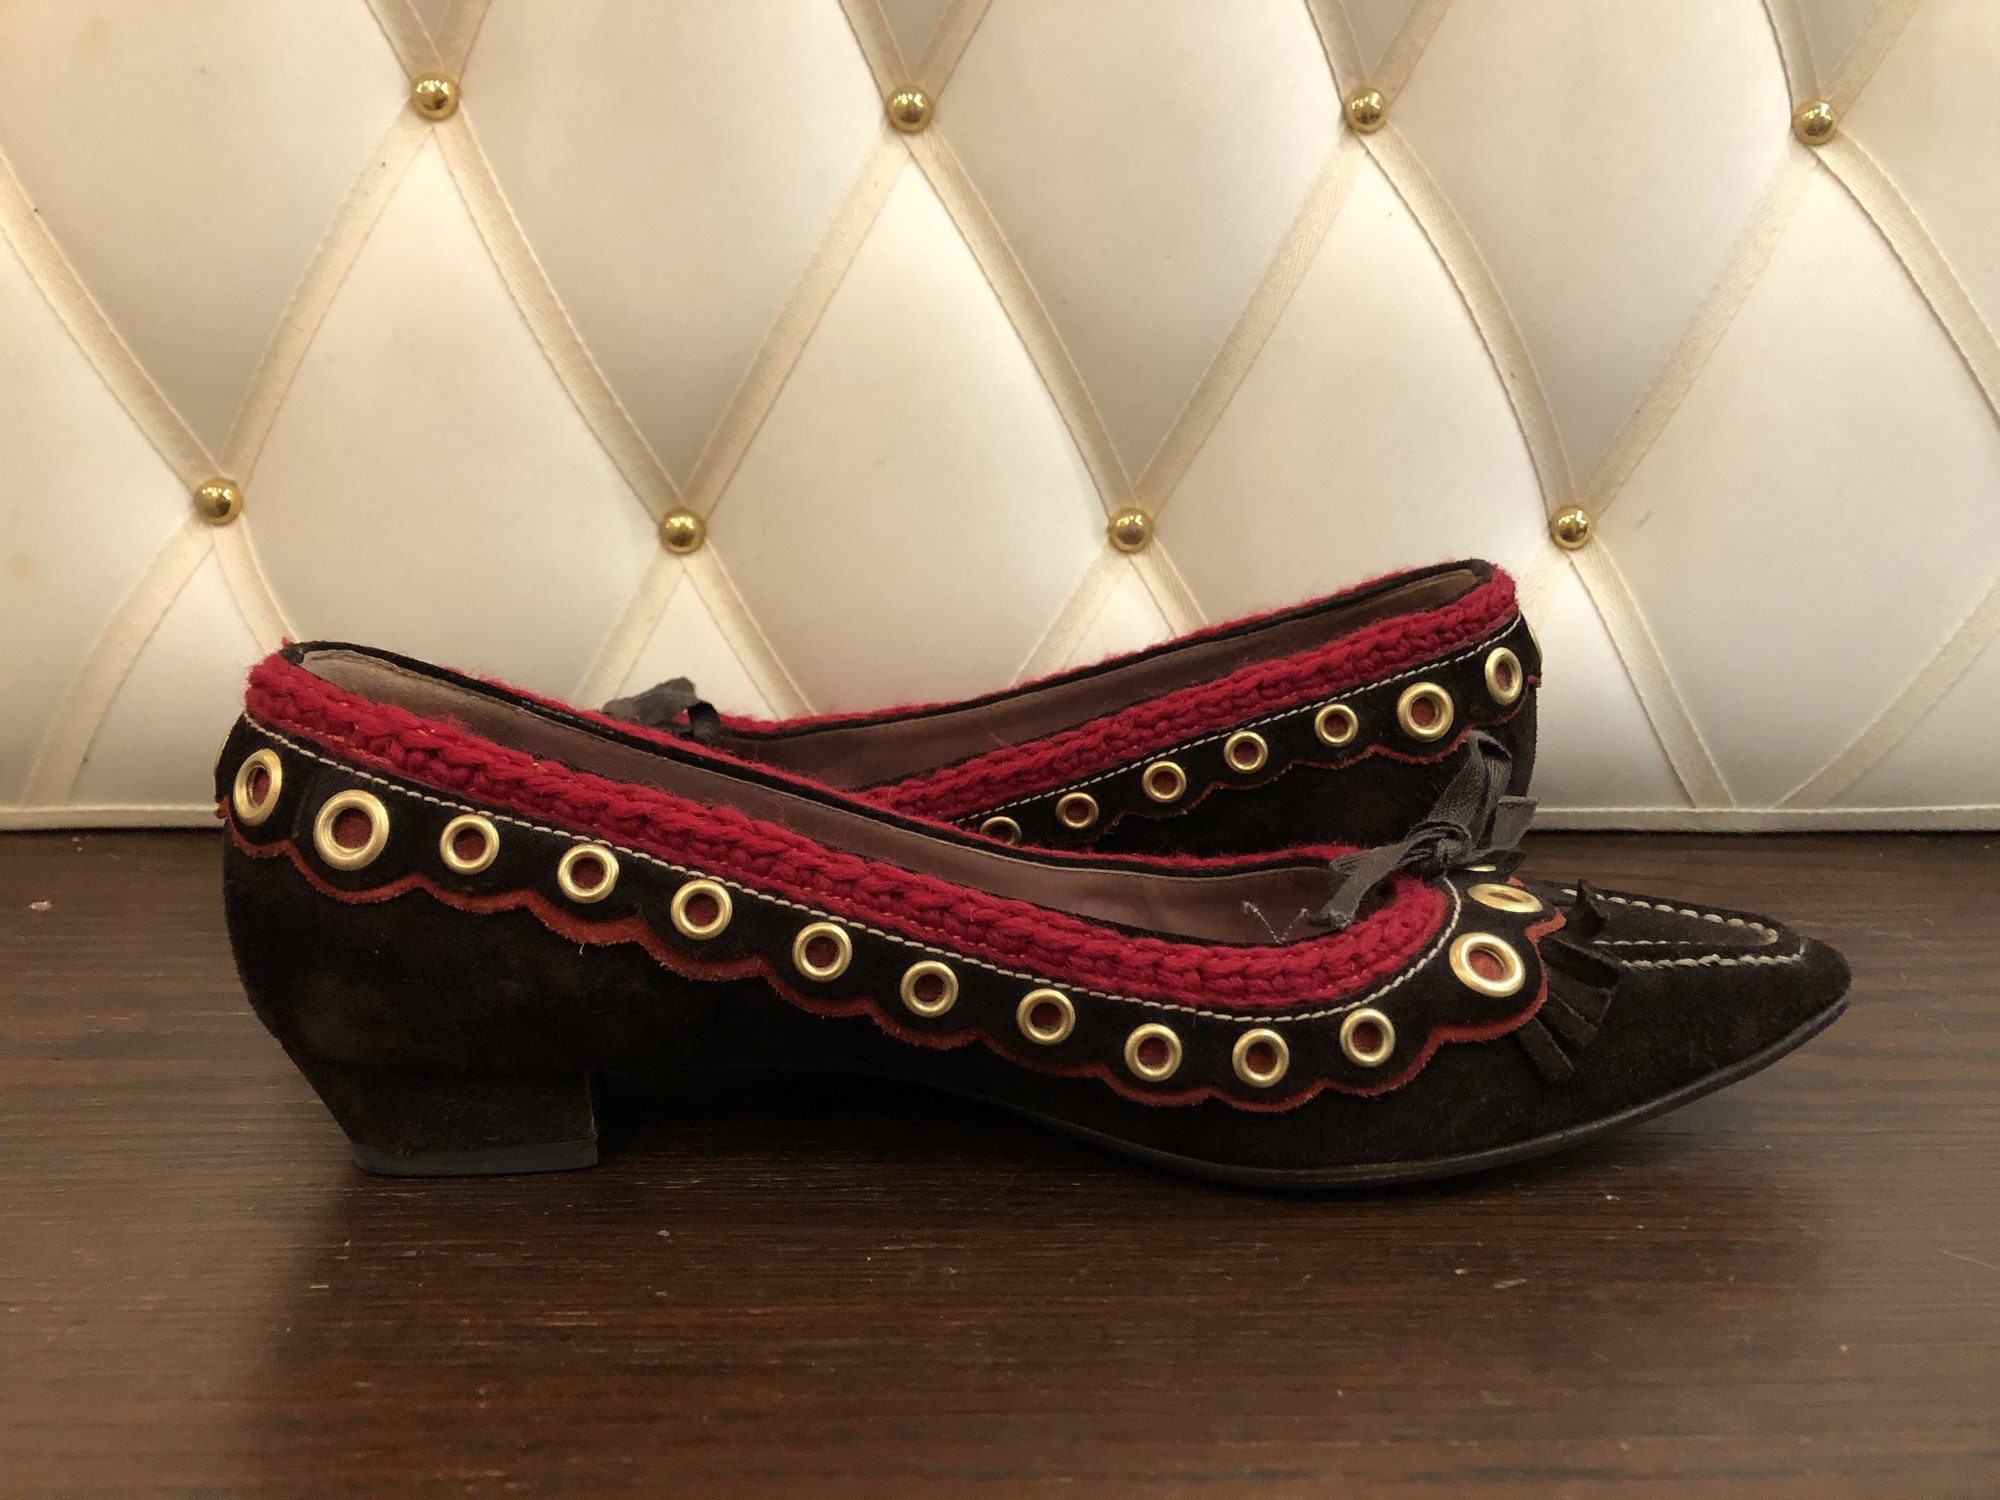 Miu Miu Suede Flats, Brown, Size: 40.5<br /> brown with red suede trim. bottoms have been resoled.<br /> About a 10.5